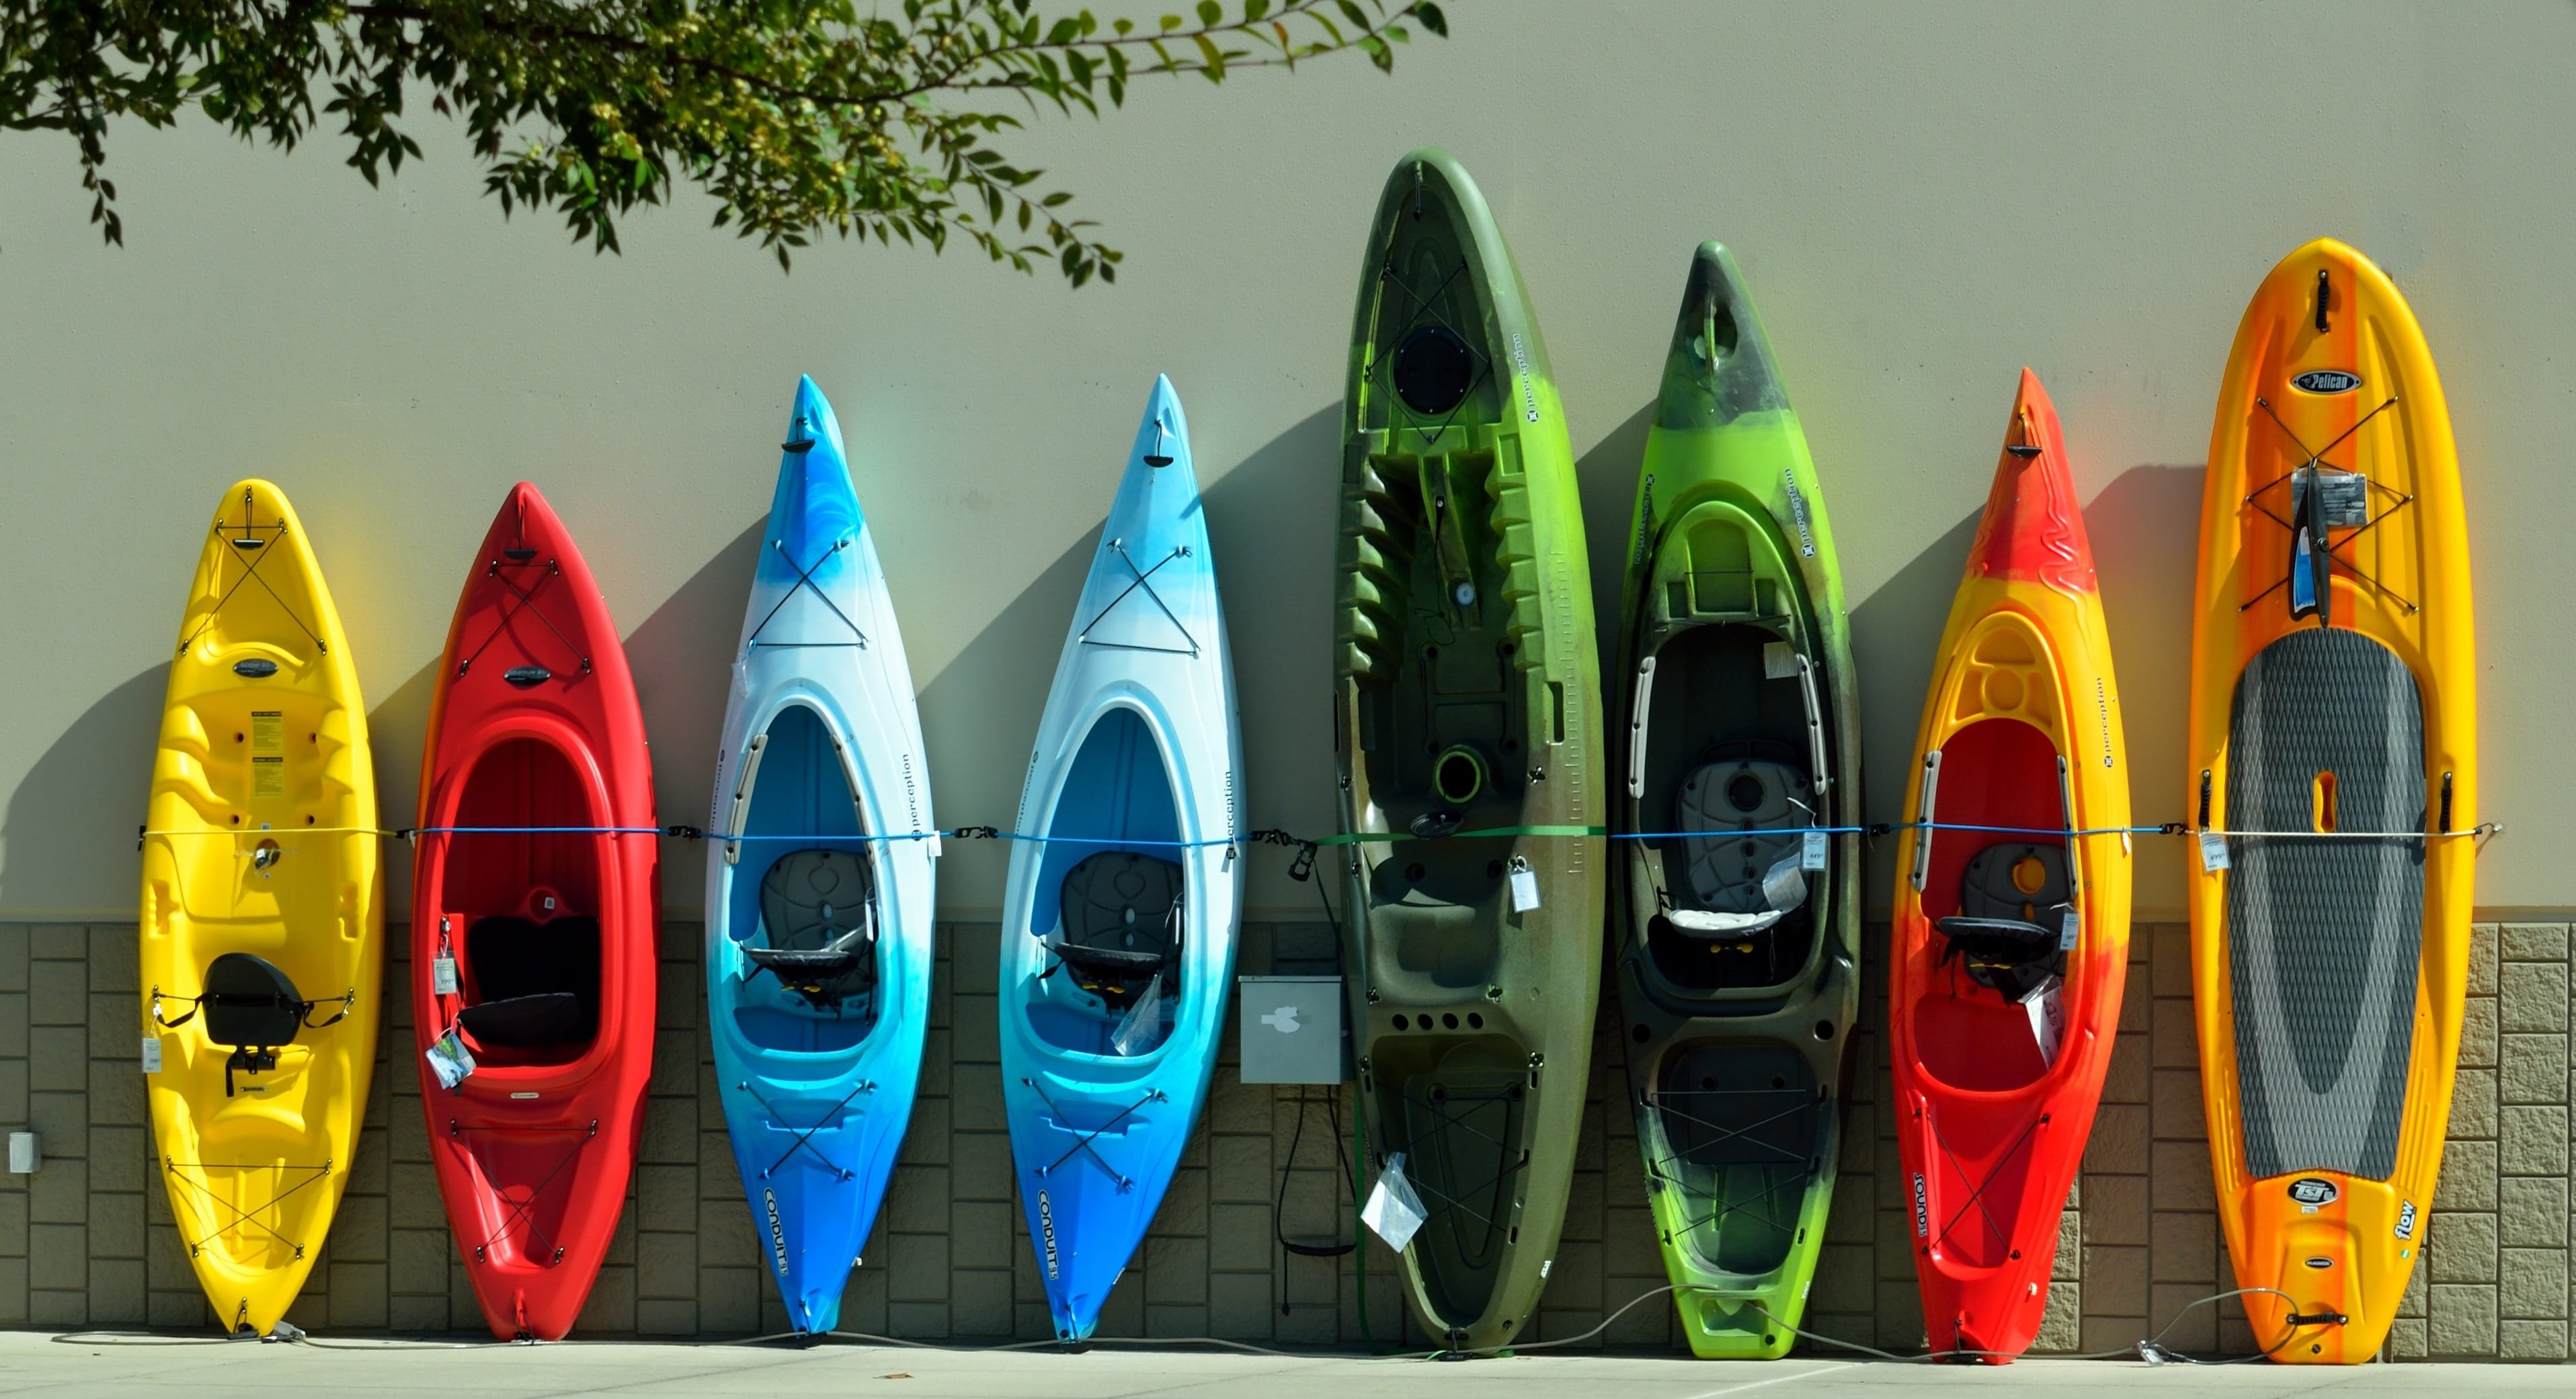 Types Of Kayaks For Every Water Experience